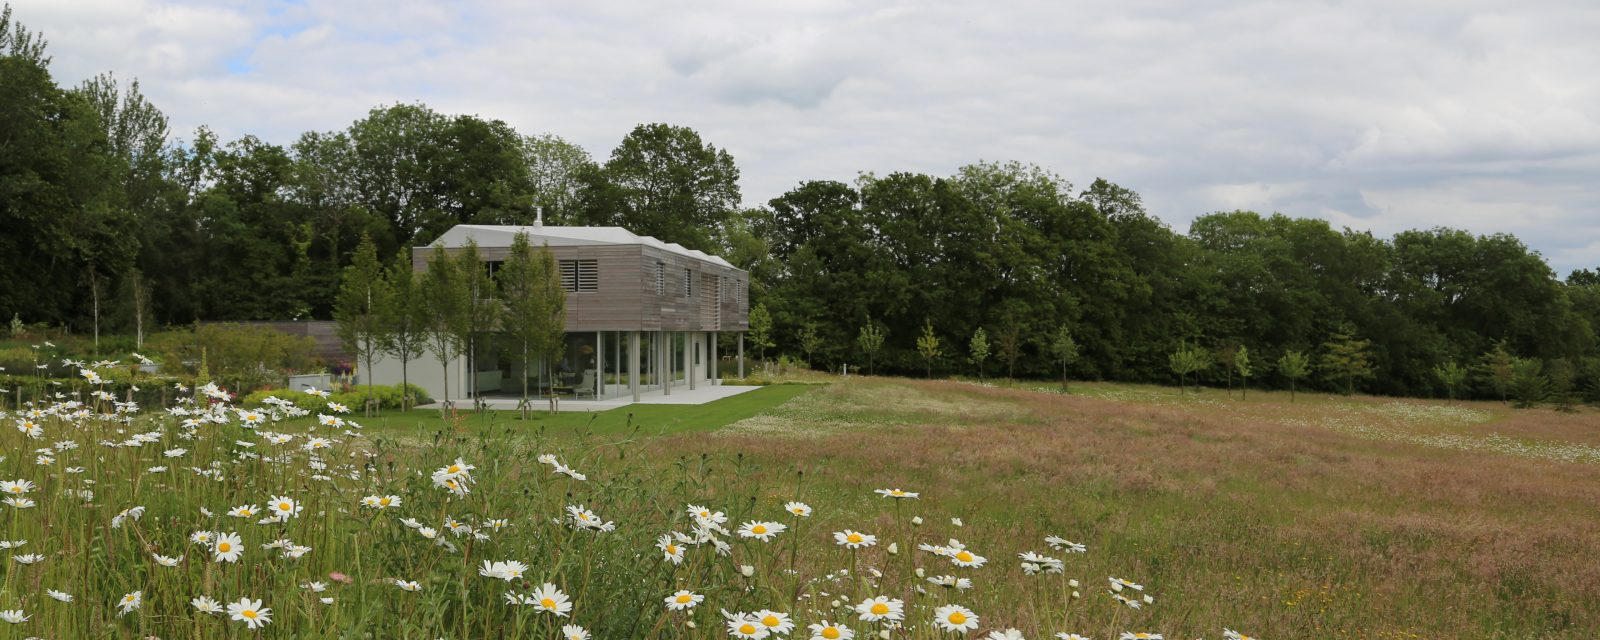 Sussex House - Andy Sturgeon - SGD Awards 2016